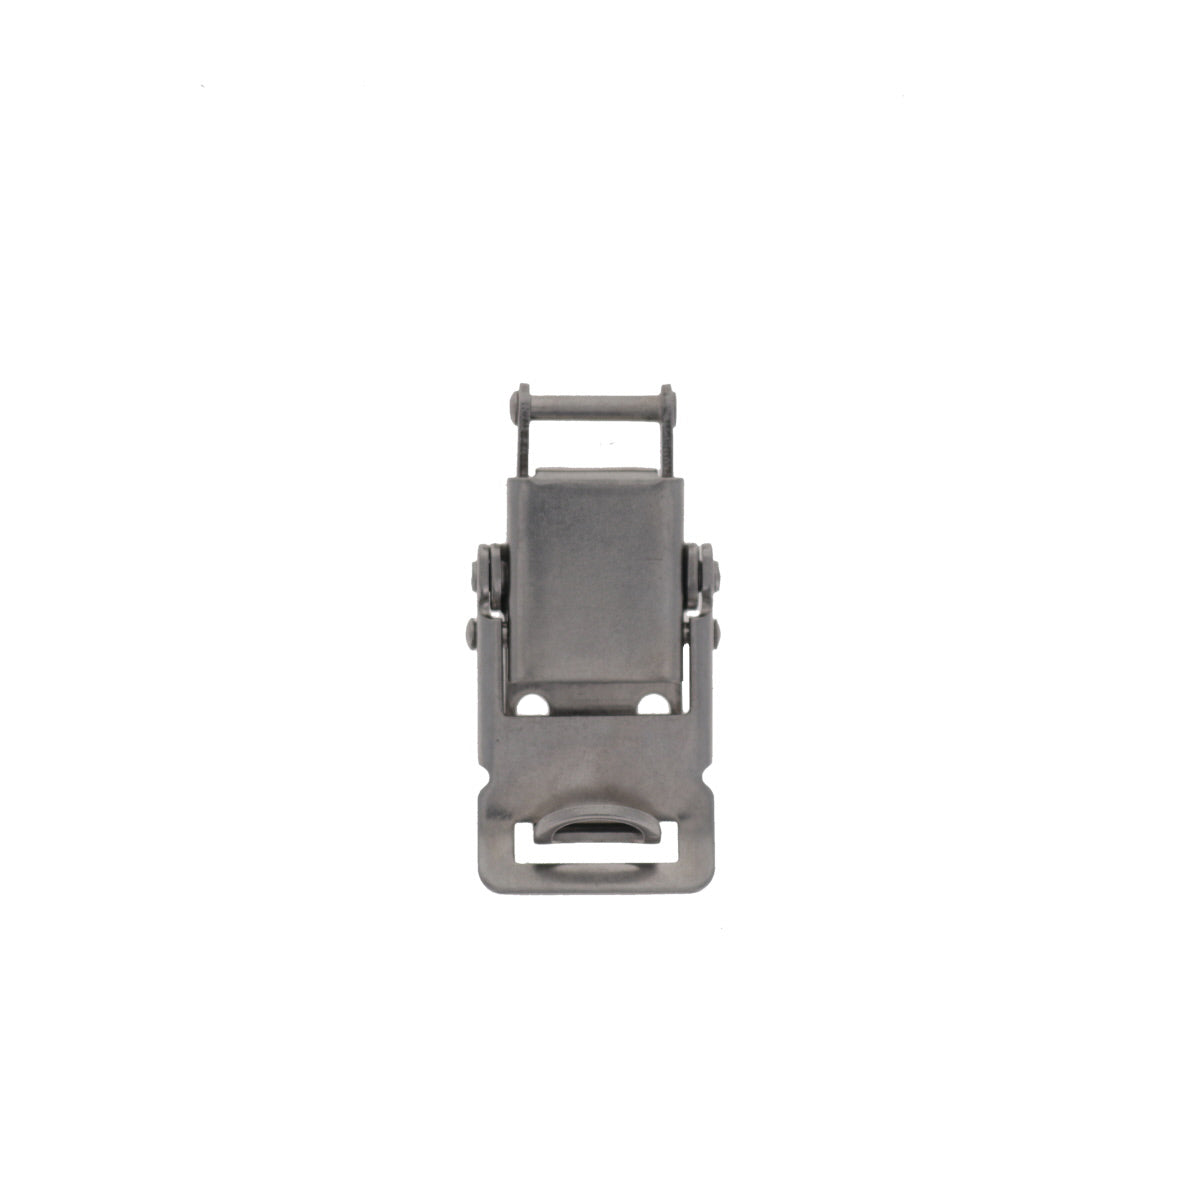 Pad lockable Compression Spring Drawlatch with upswept Lever, Front View